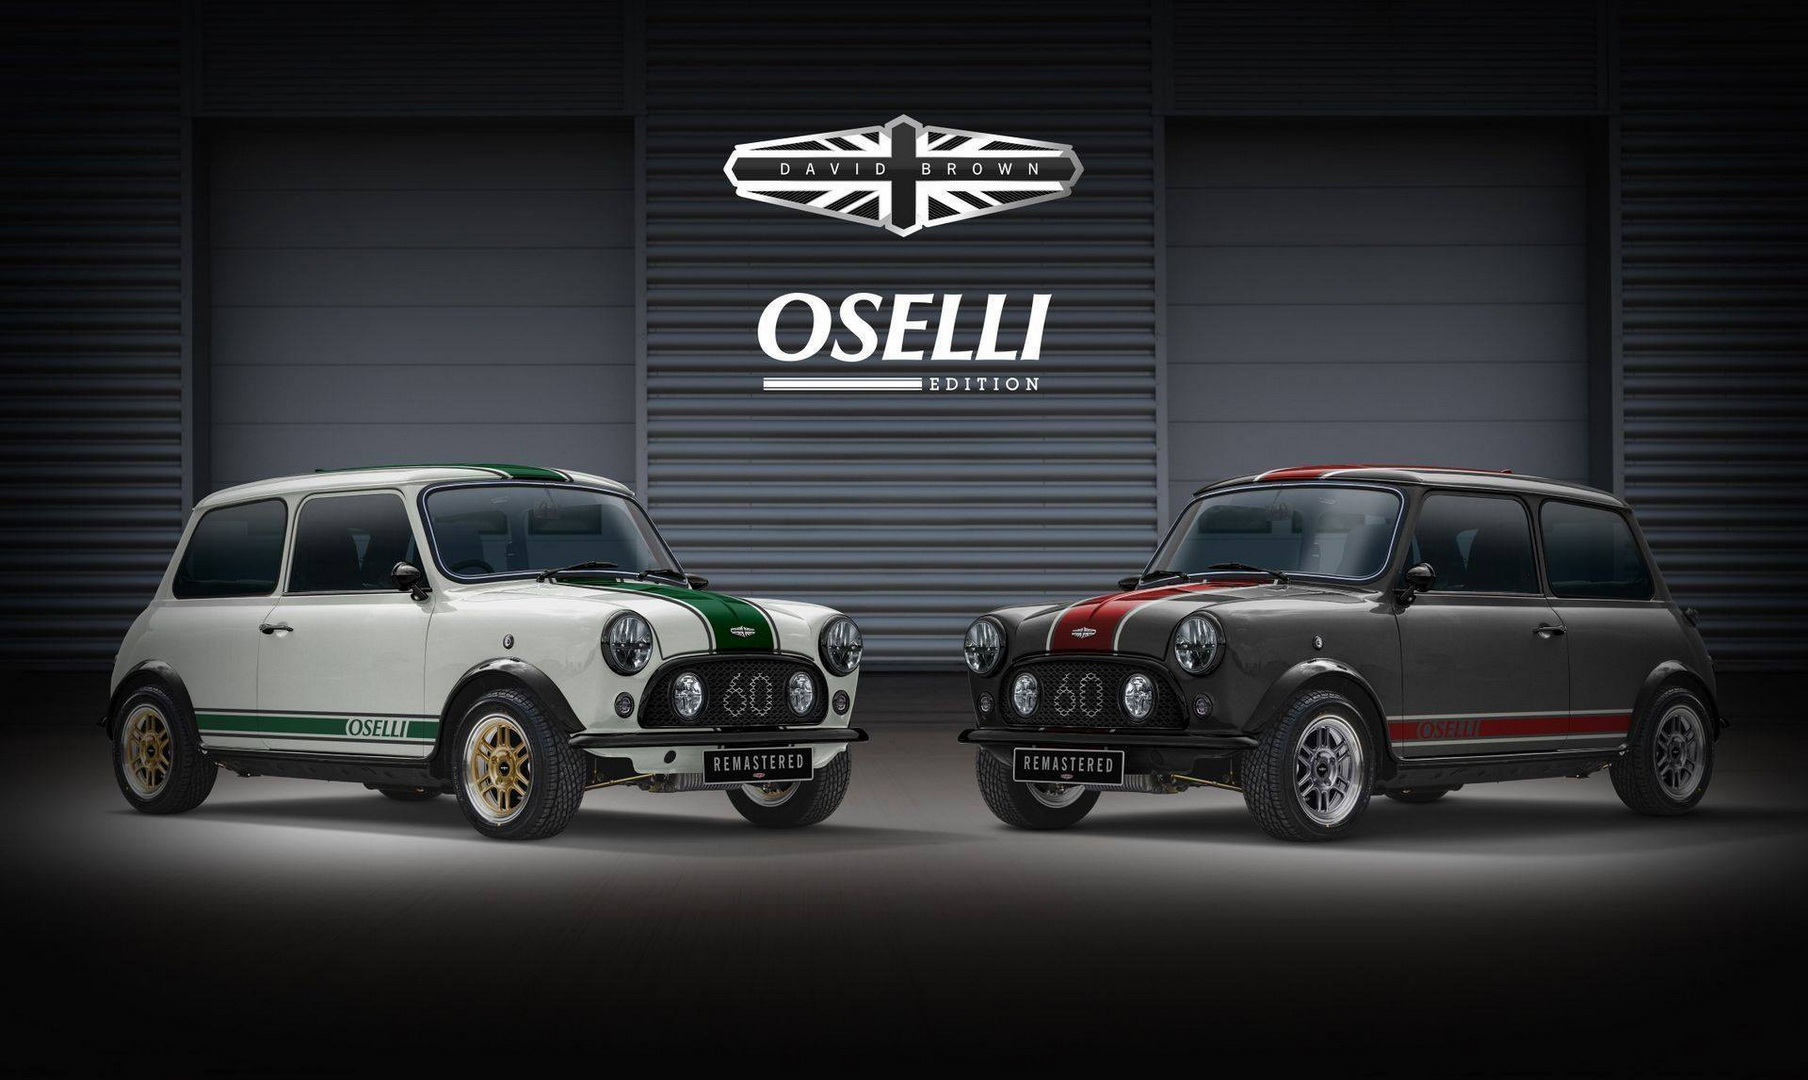 David Brown Automotive Classic Mini Oselli Edition